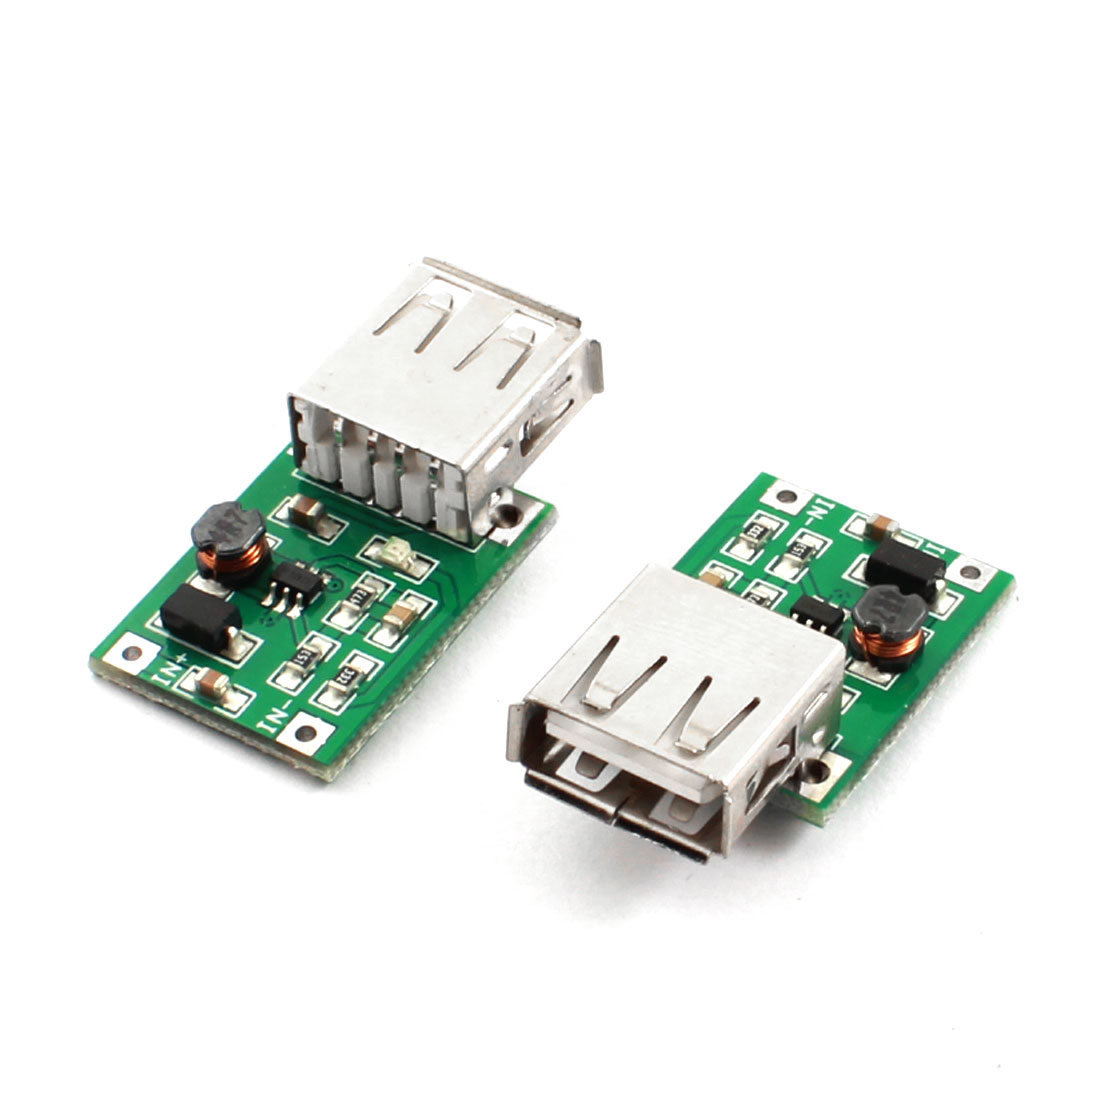 2pcs DC-DC Voltage Step Up Boost Module 0.9V to 5V 600mA USB Connecter Charger for MP3 MP4 Phone